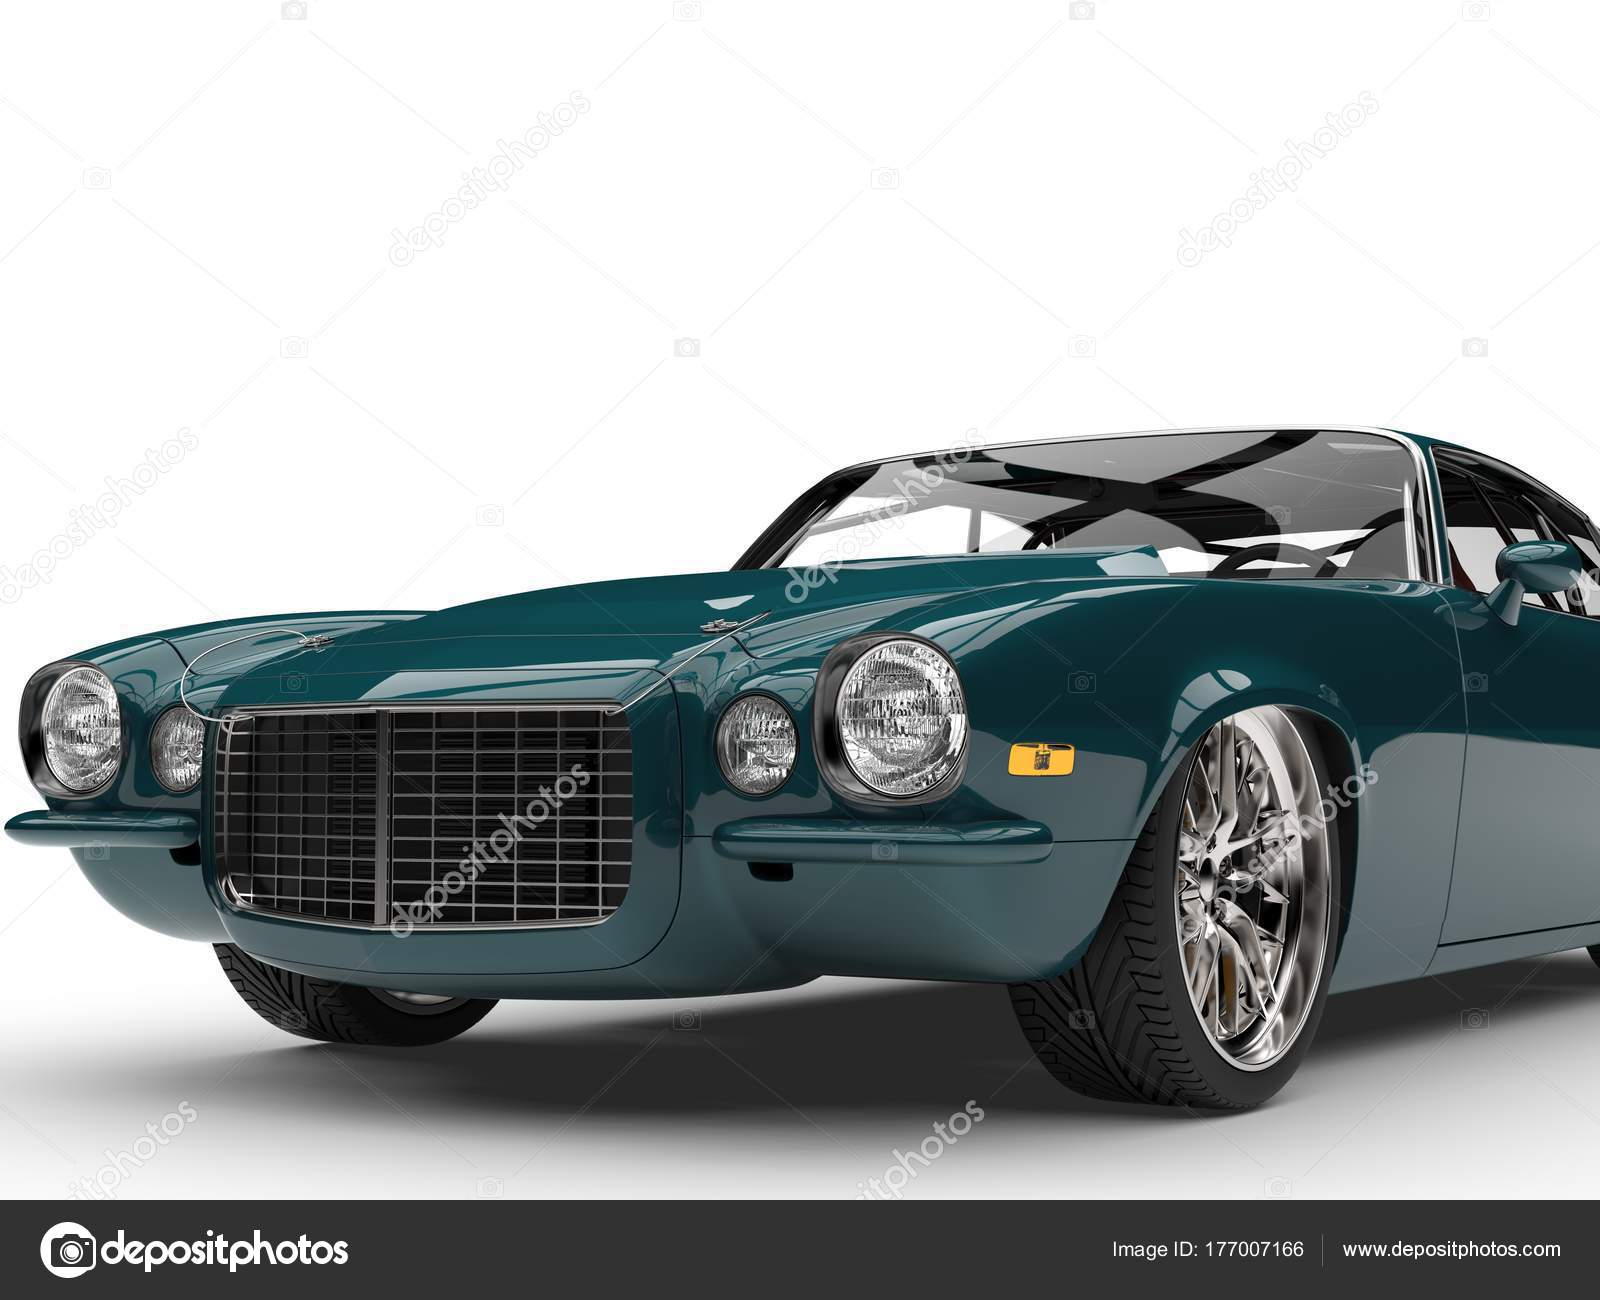 Midnight Green Classic Vintage American Car Front View Closuep Shot ...